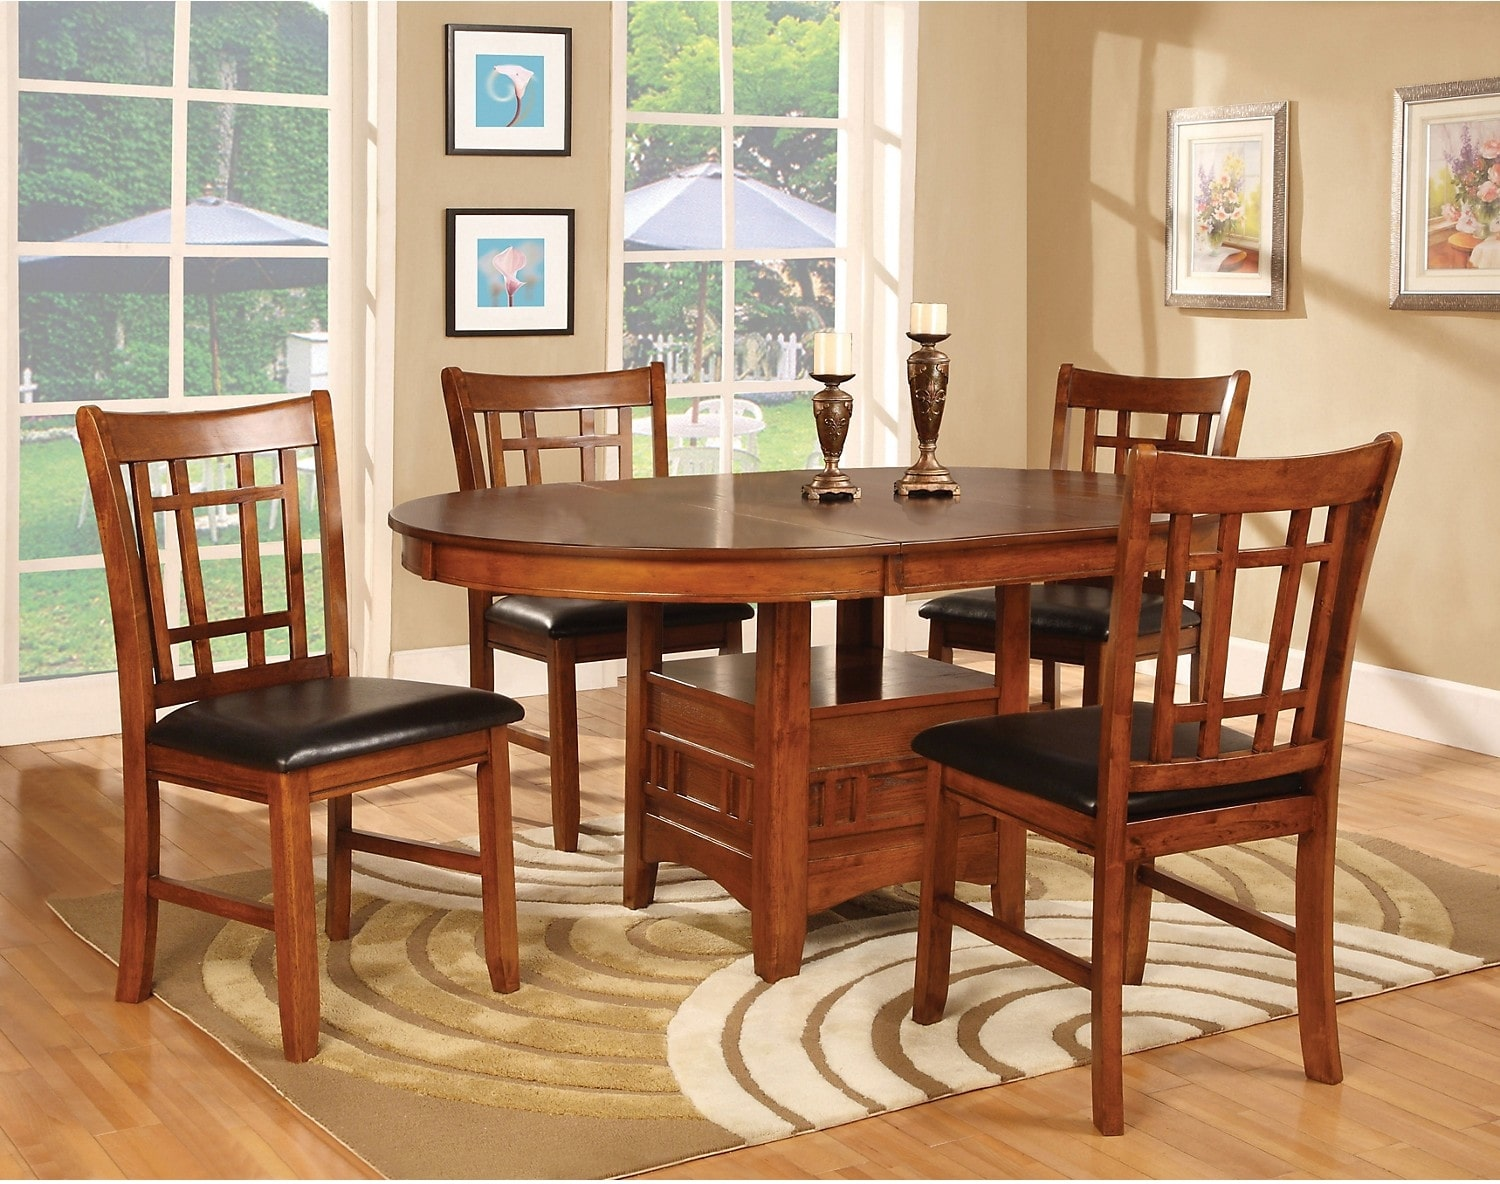 Dalton 5 piece oak dining package the brick for The brick dining room sets